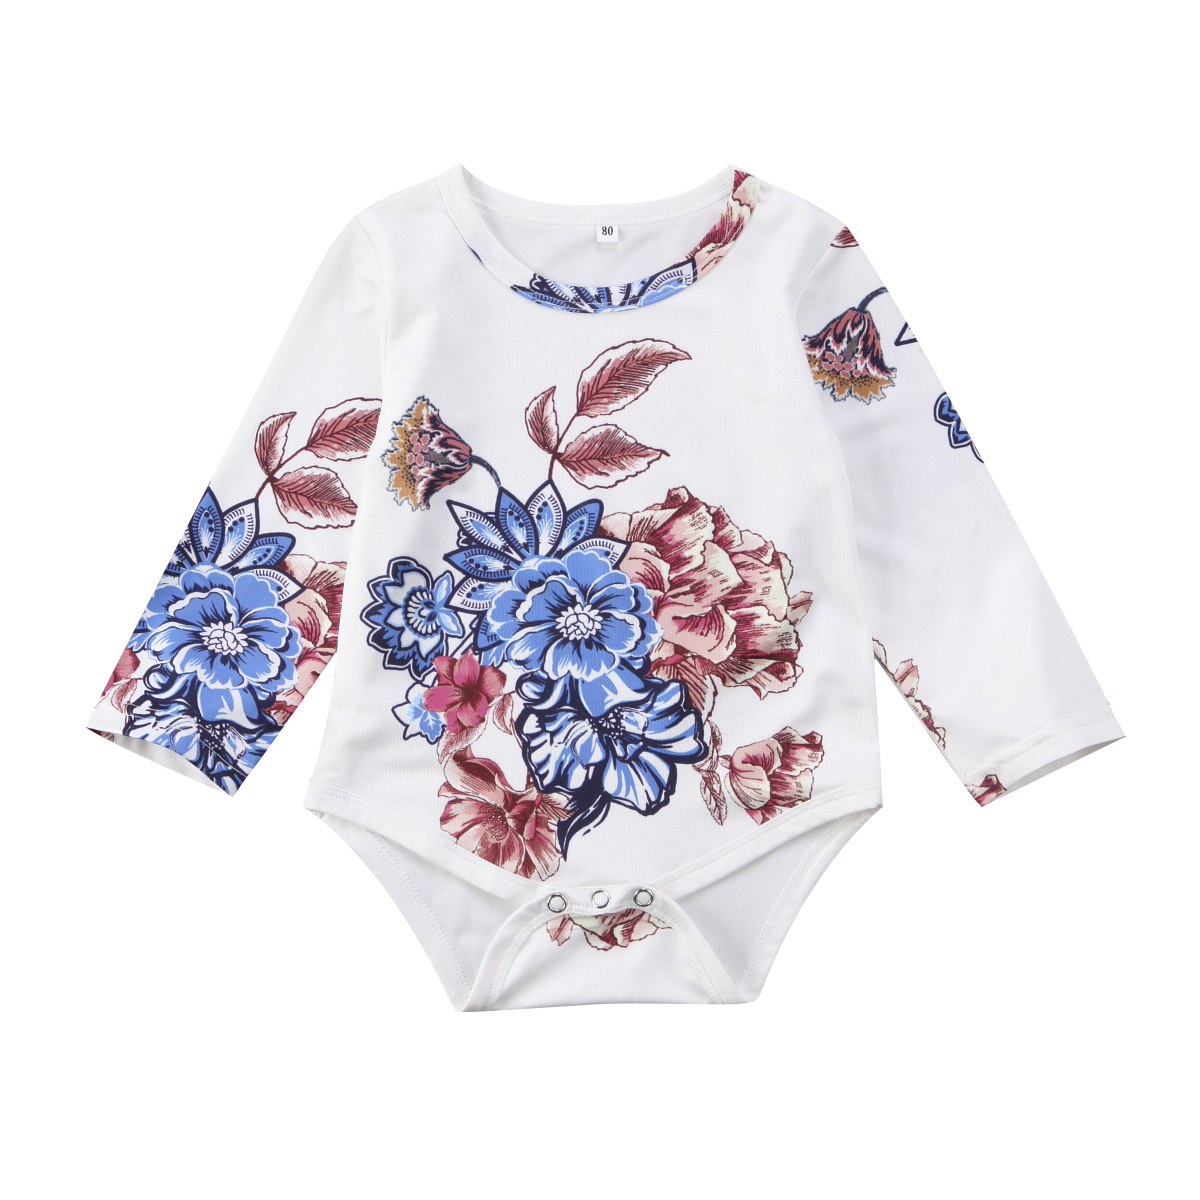 a903fe3bb27f Fashion Ice Cream Lovely Newborn Baby Girls Floral Romper Dress Jumpsuit  Playsuit Summer Outfits